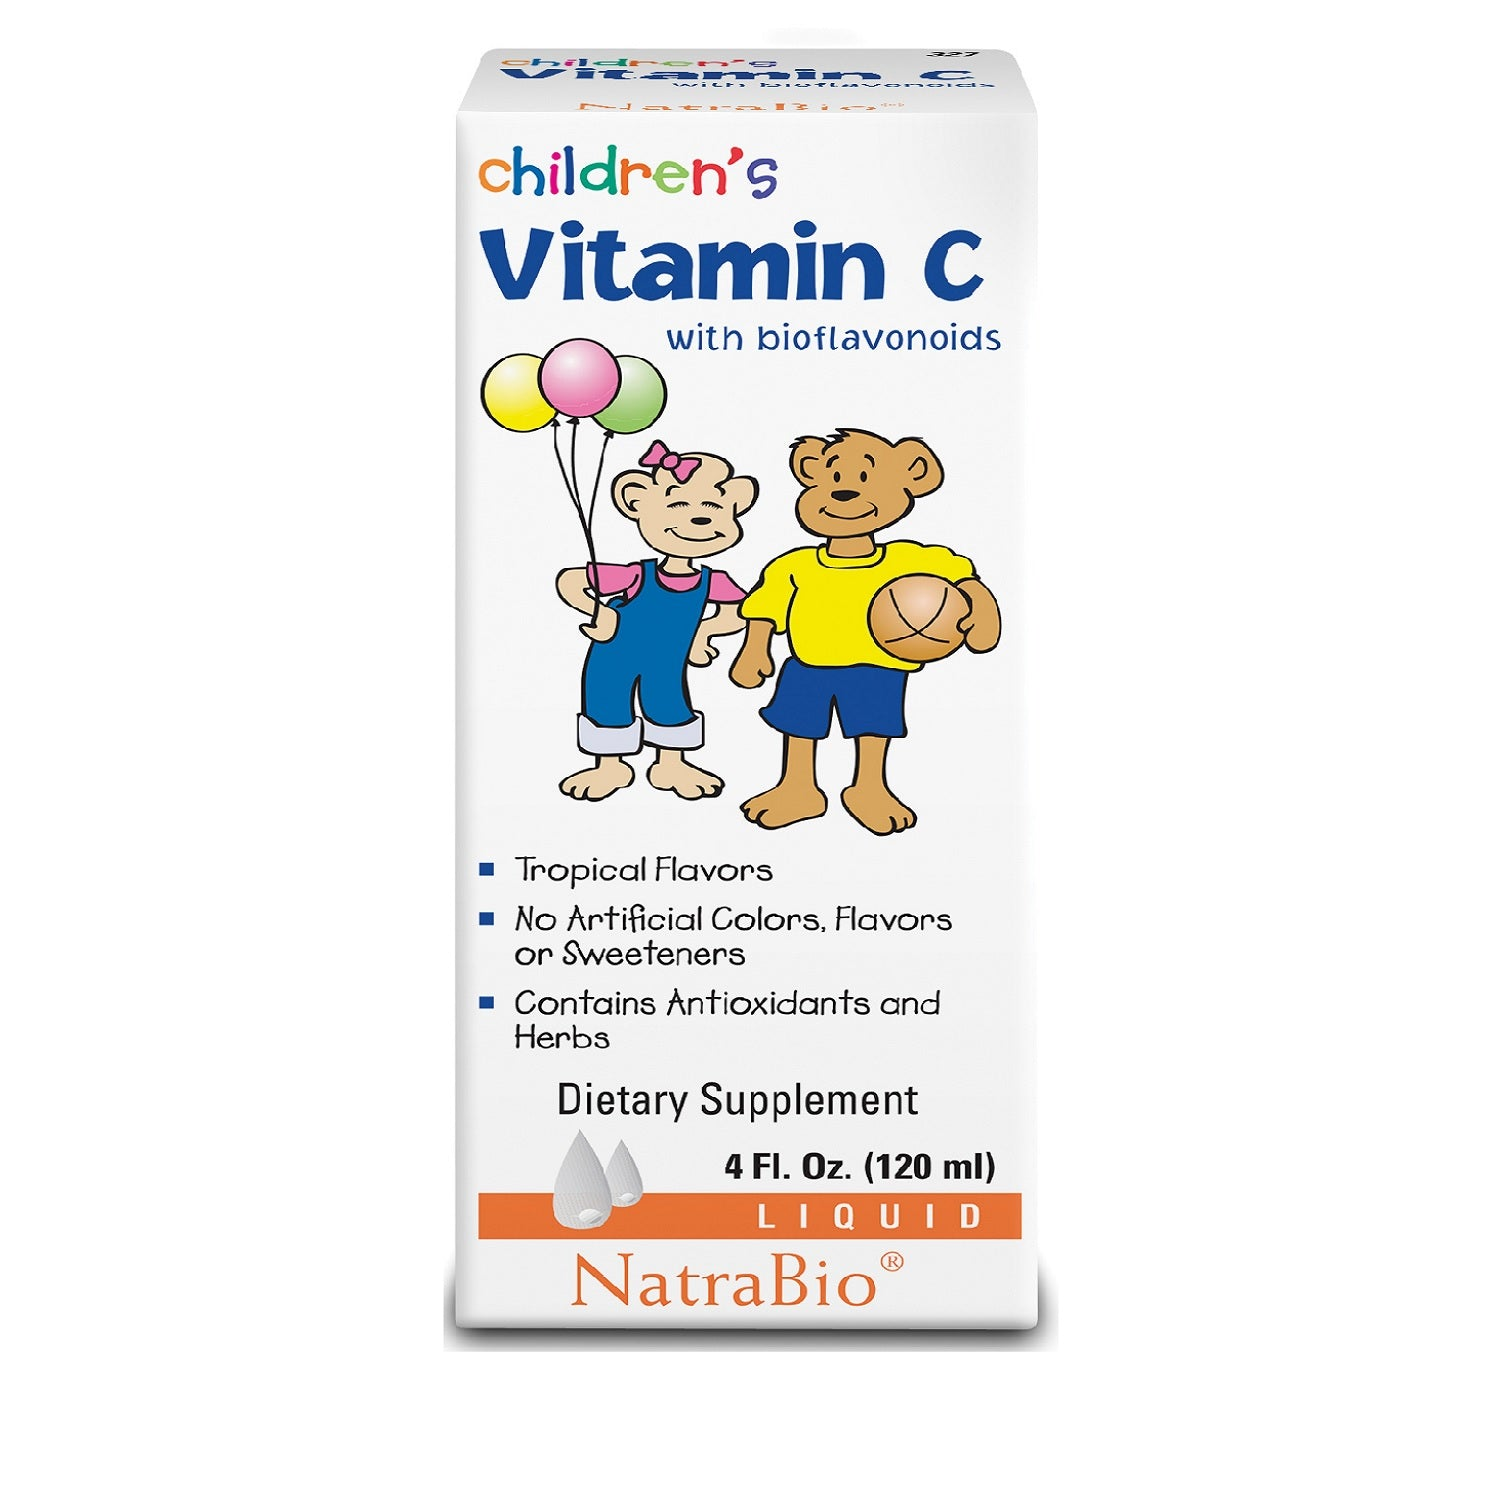 Natra-Bio Children's Liquid Vitamin C, 120 ml